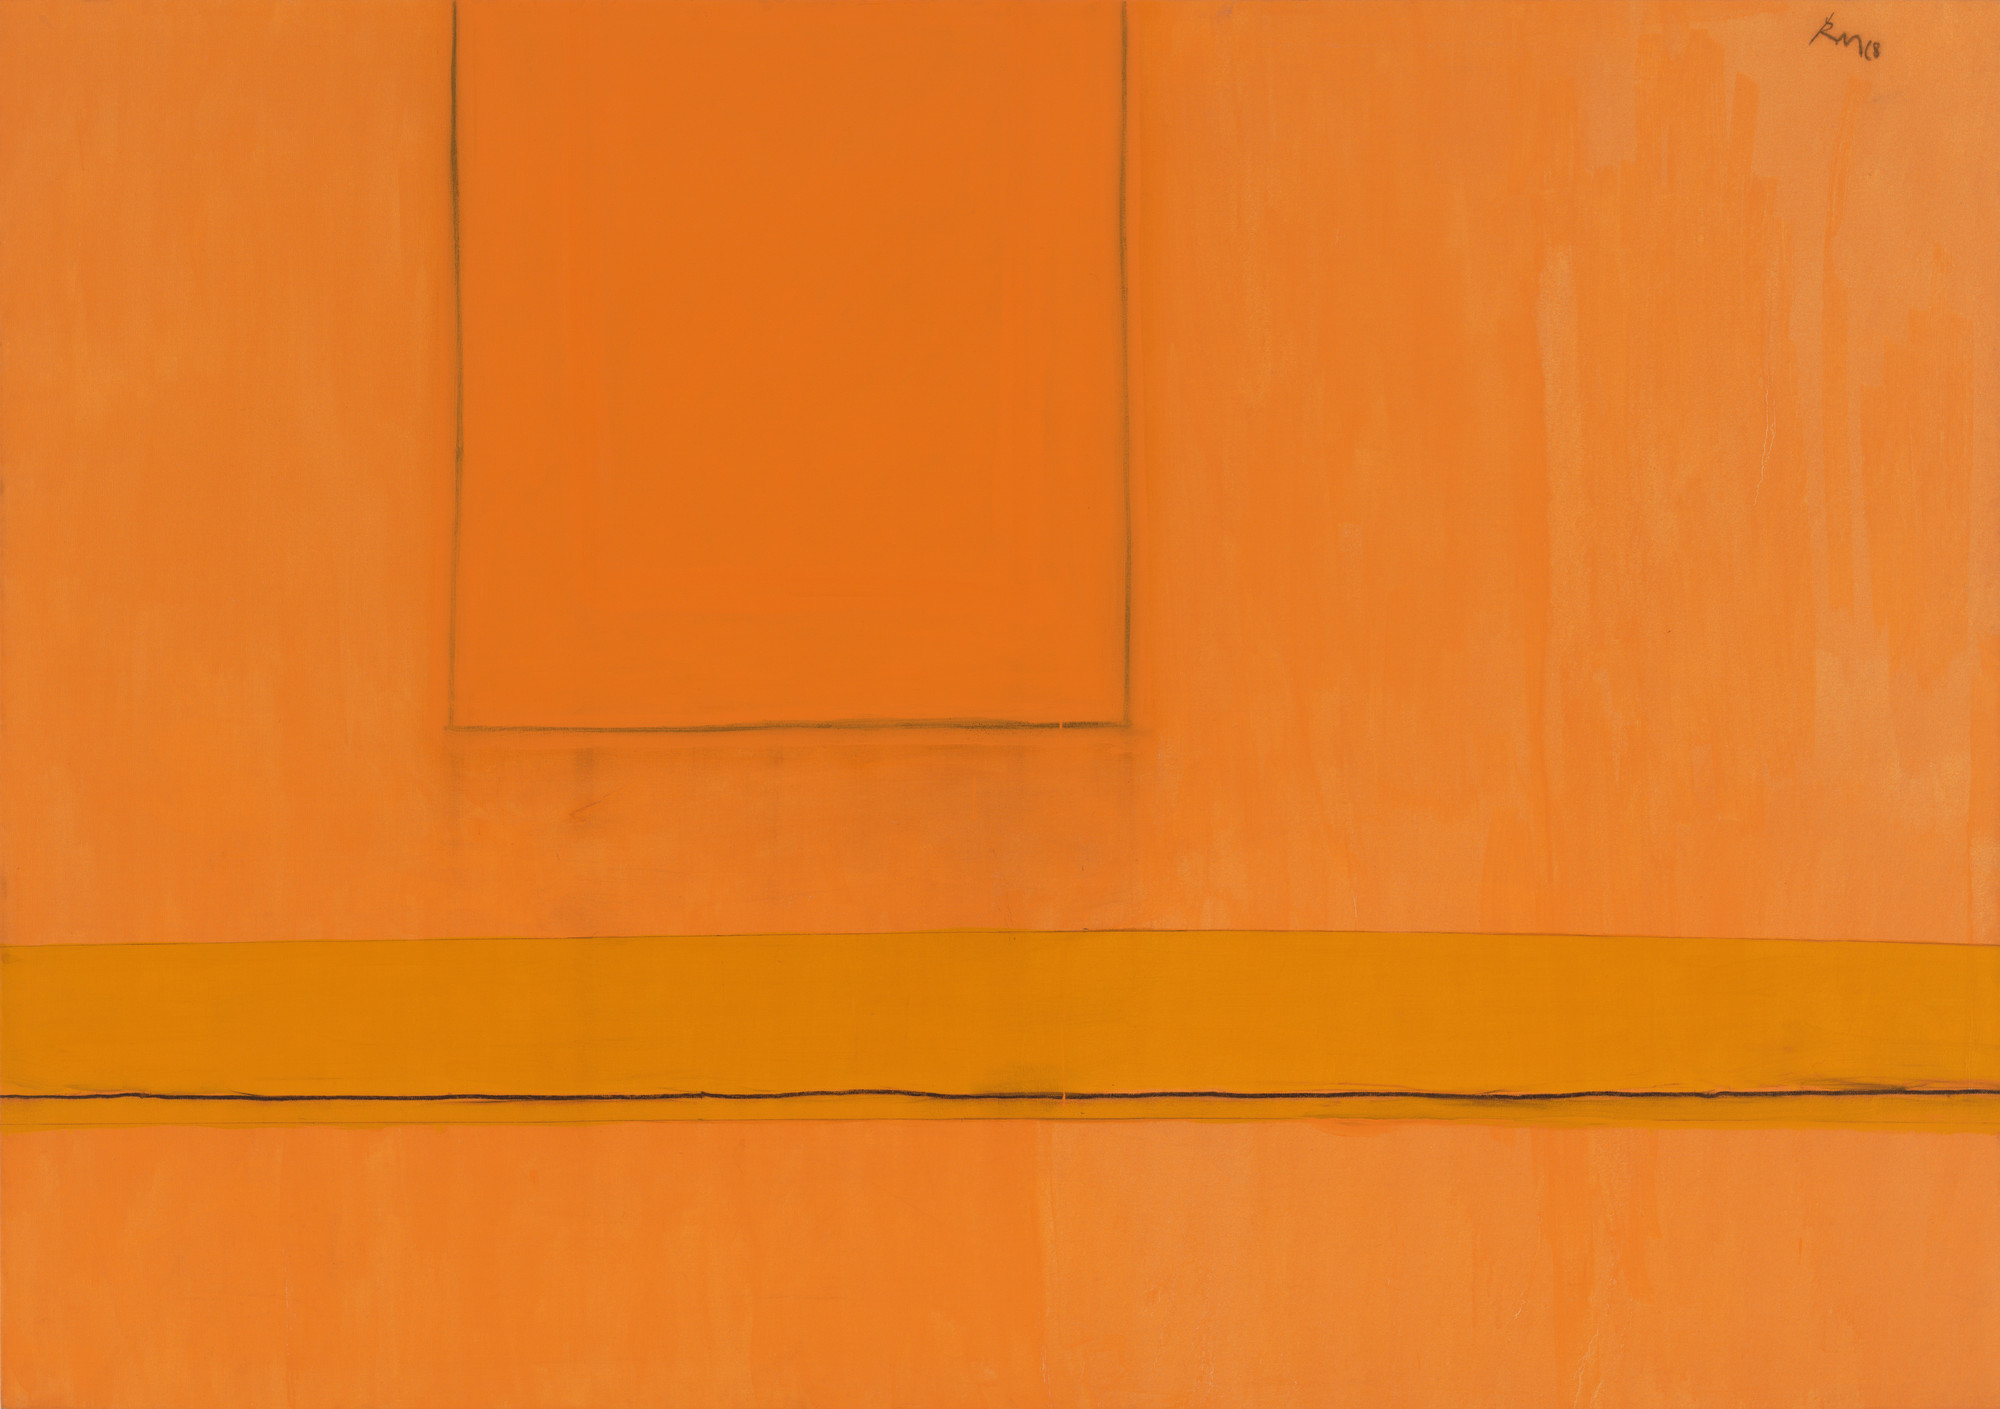 Robert Motherwell. Open Number 24 in Variations of Orange. 1968